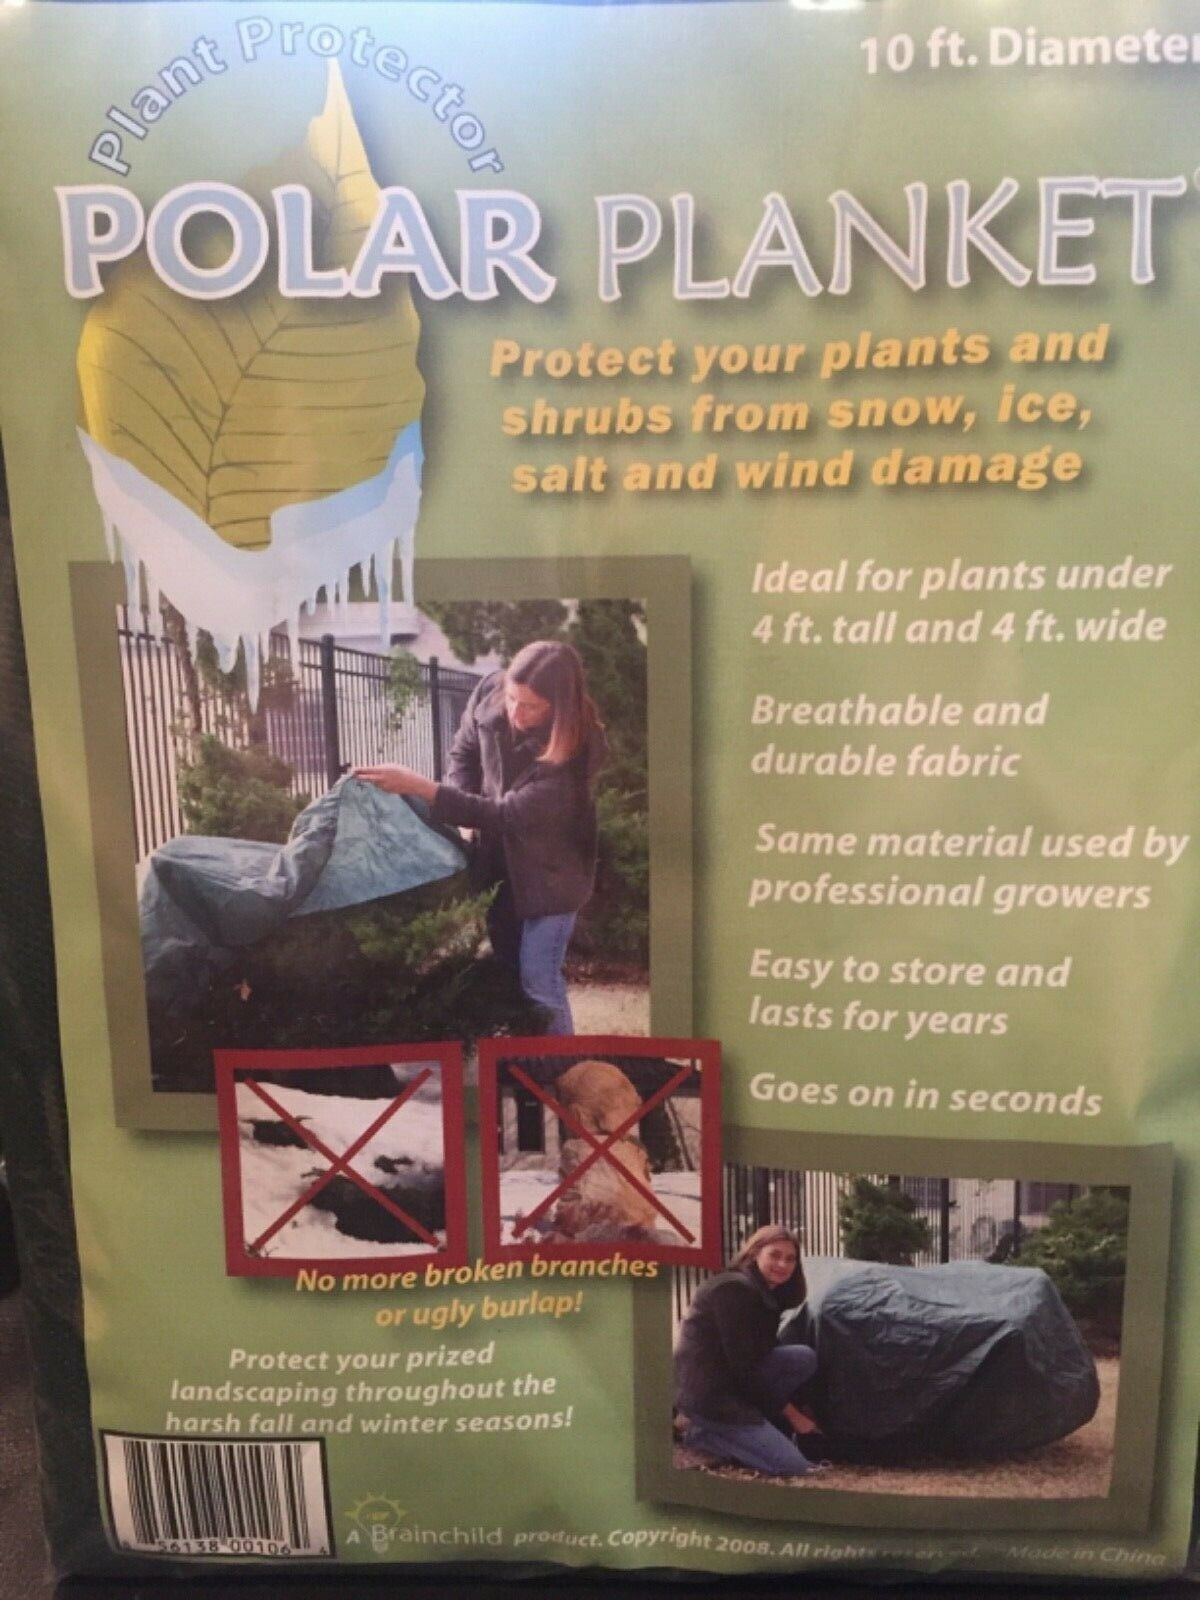 POLAR PLANKET Plant Protector for Fall Winter 10 FT Diameter Breathable Durable